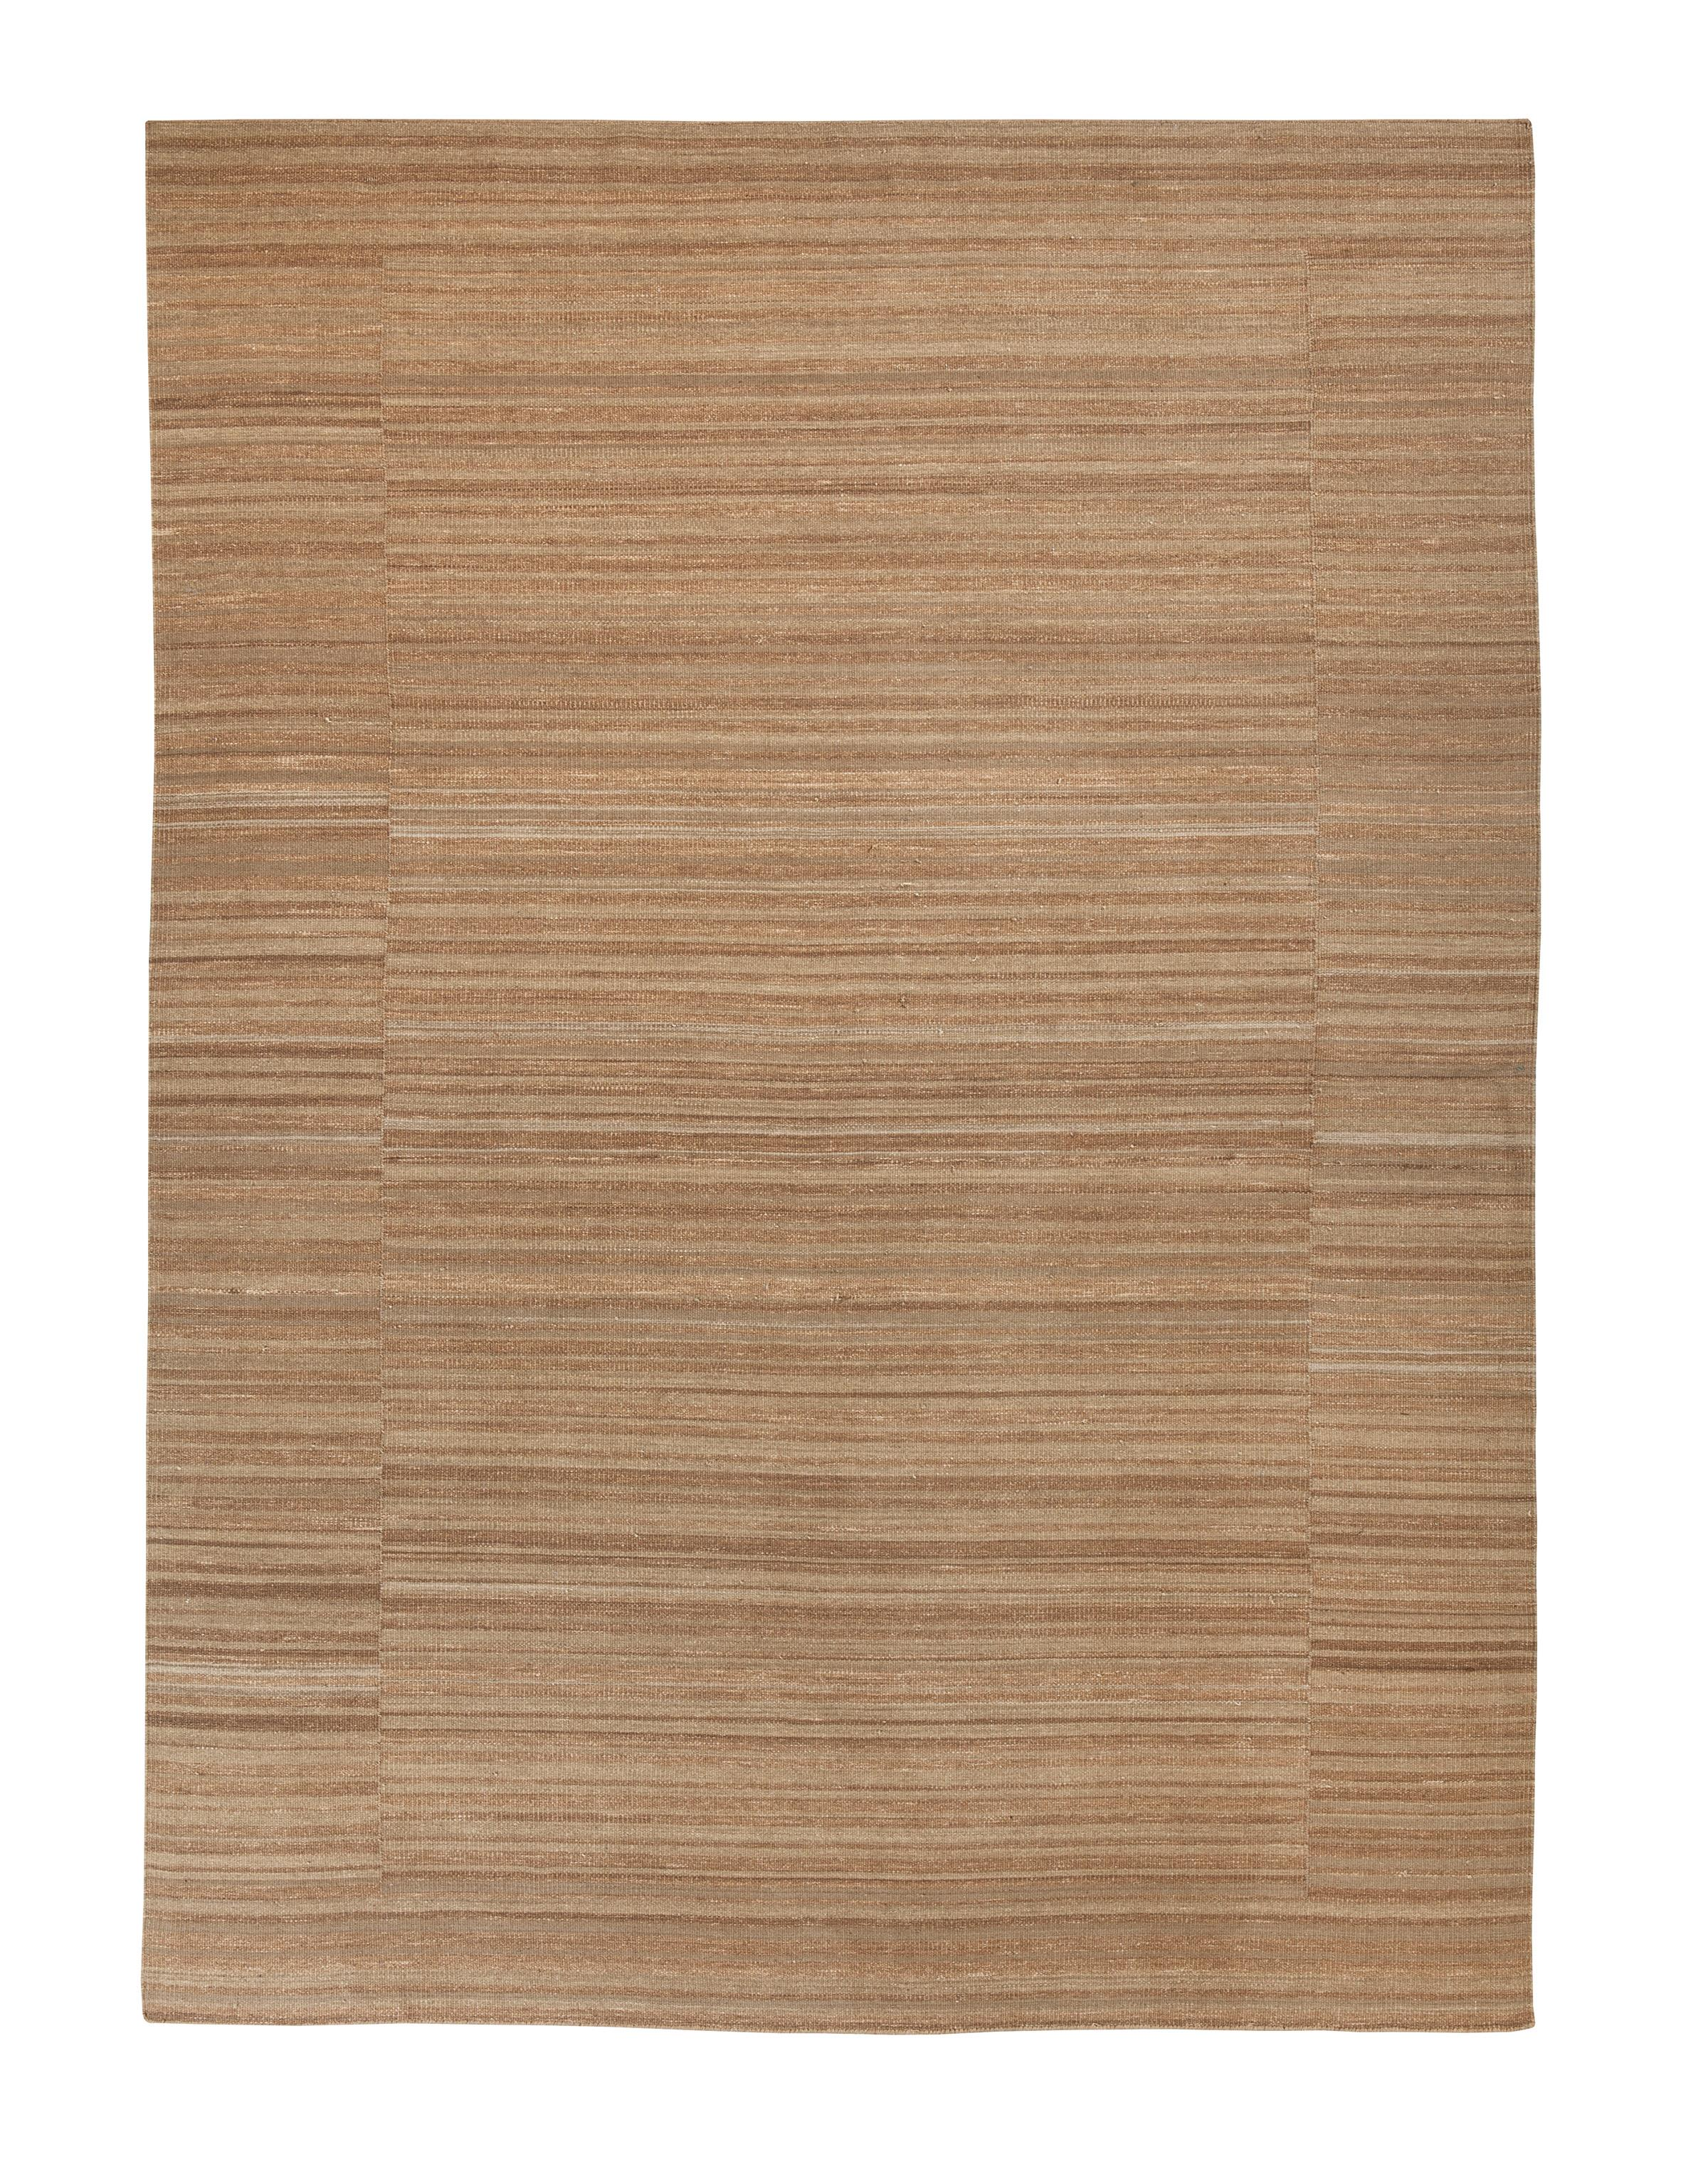 Signature Design by Ashley Transitional Area Rugs Flatweave - Tan Medium Rug - Item Number: R401592